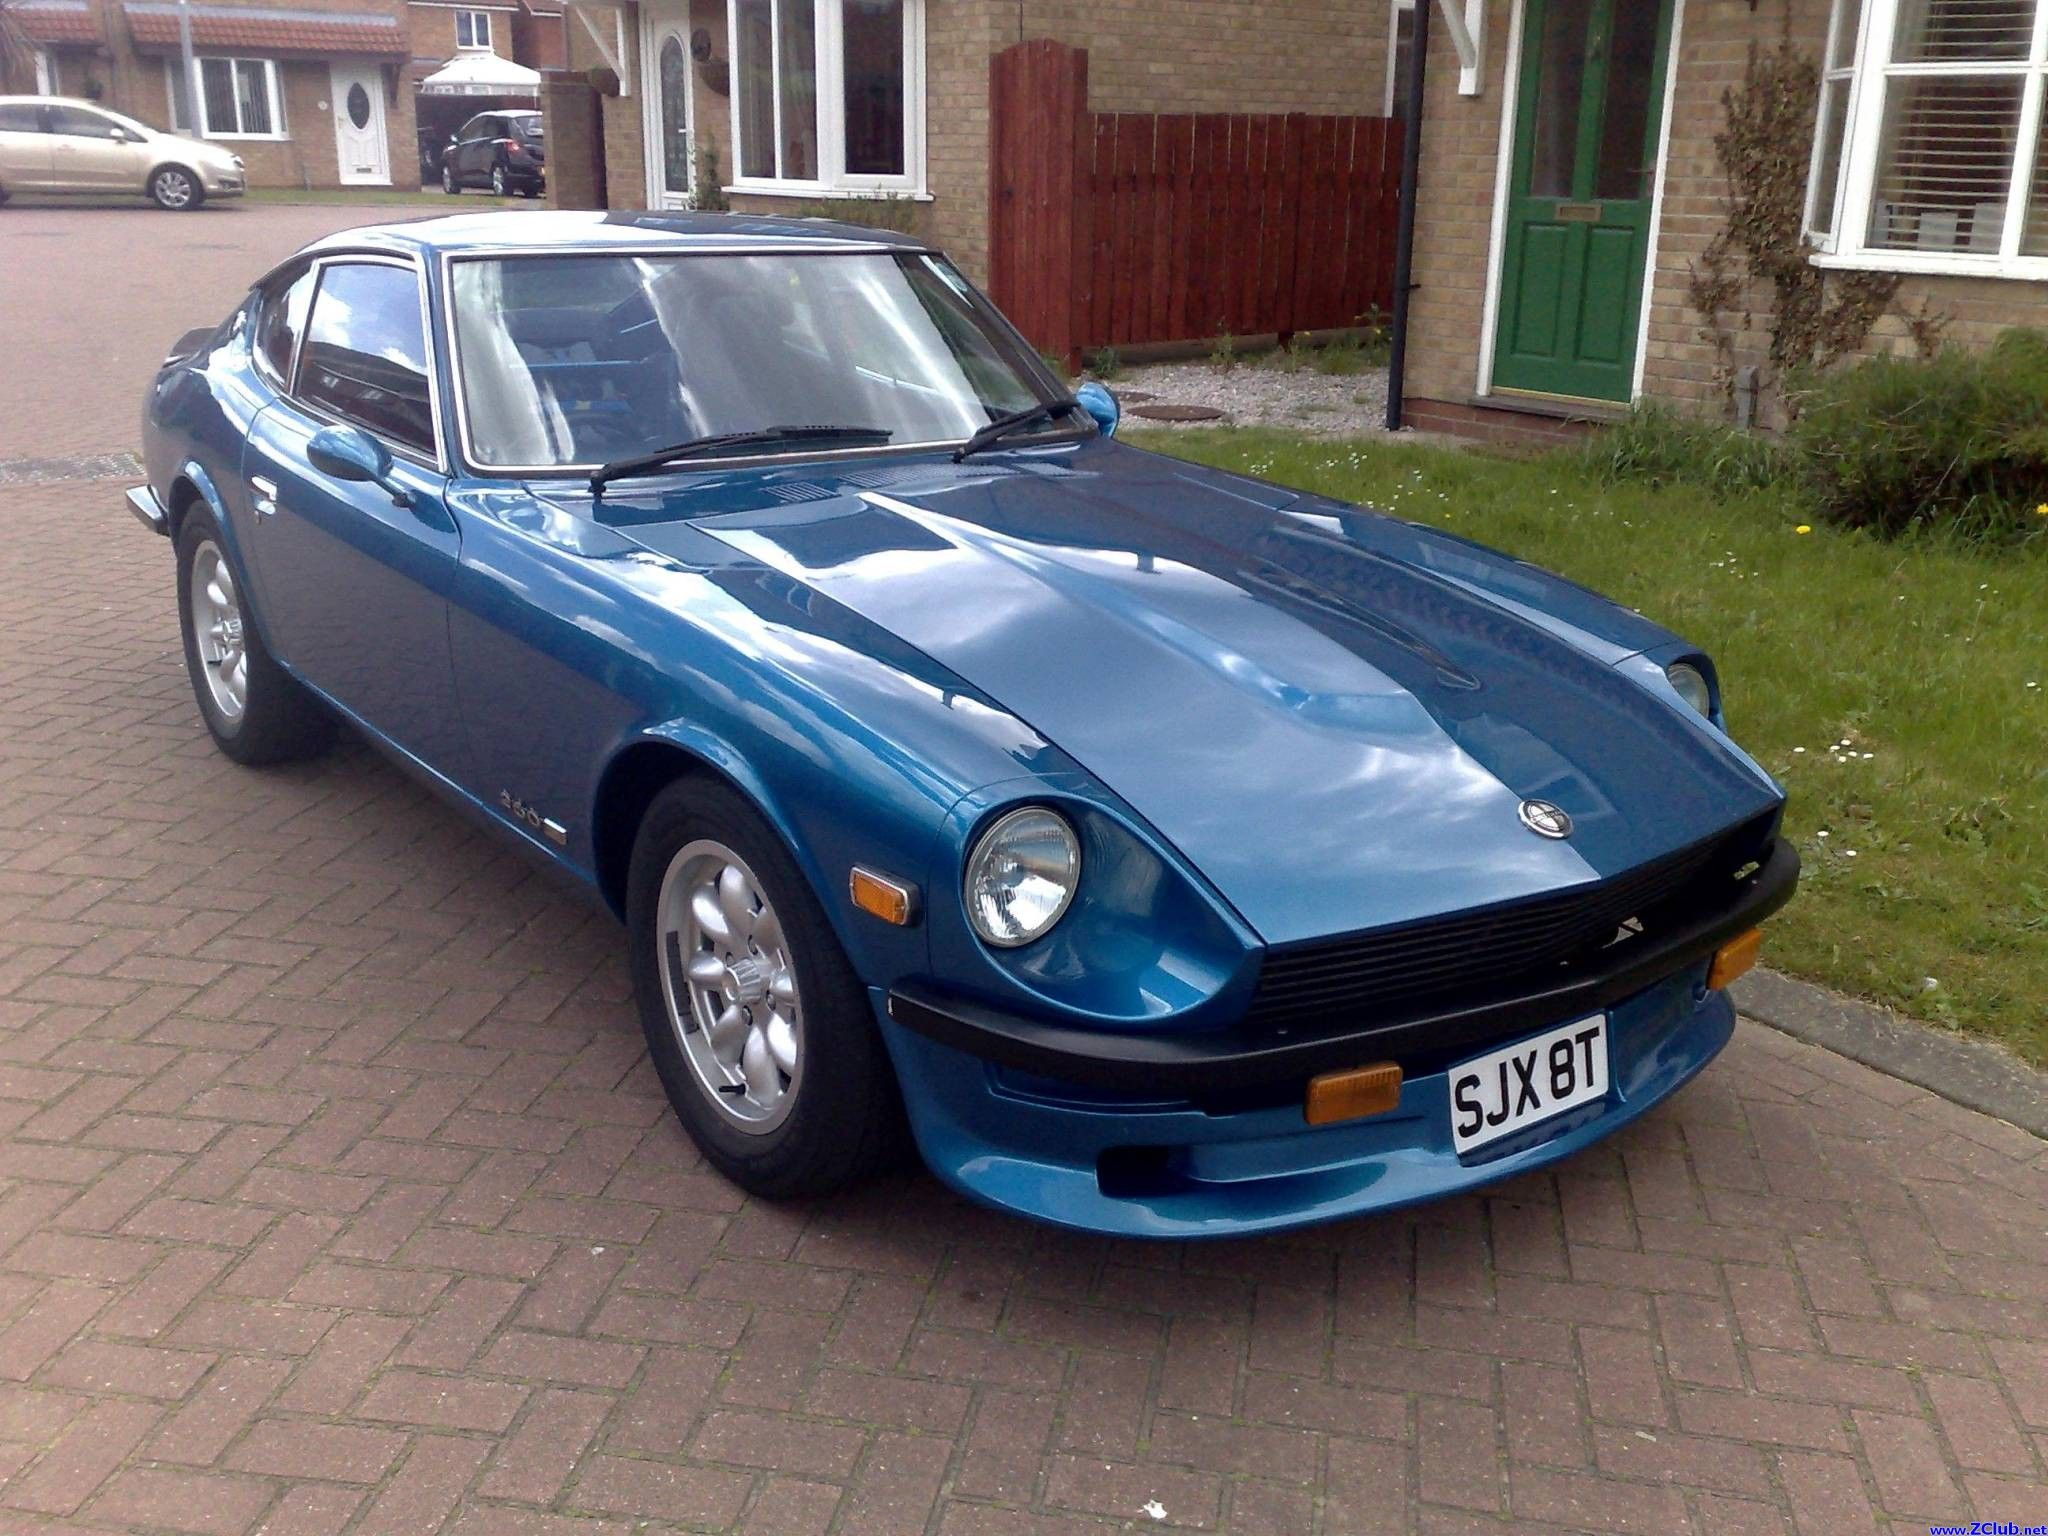 A rather nice datsun 260z i wouldn t mind this one in my driveway